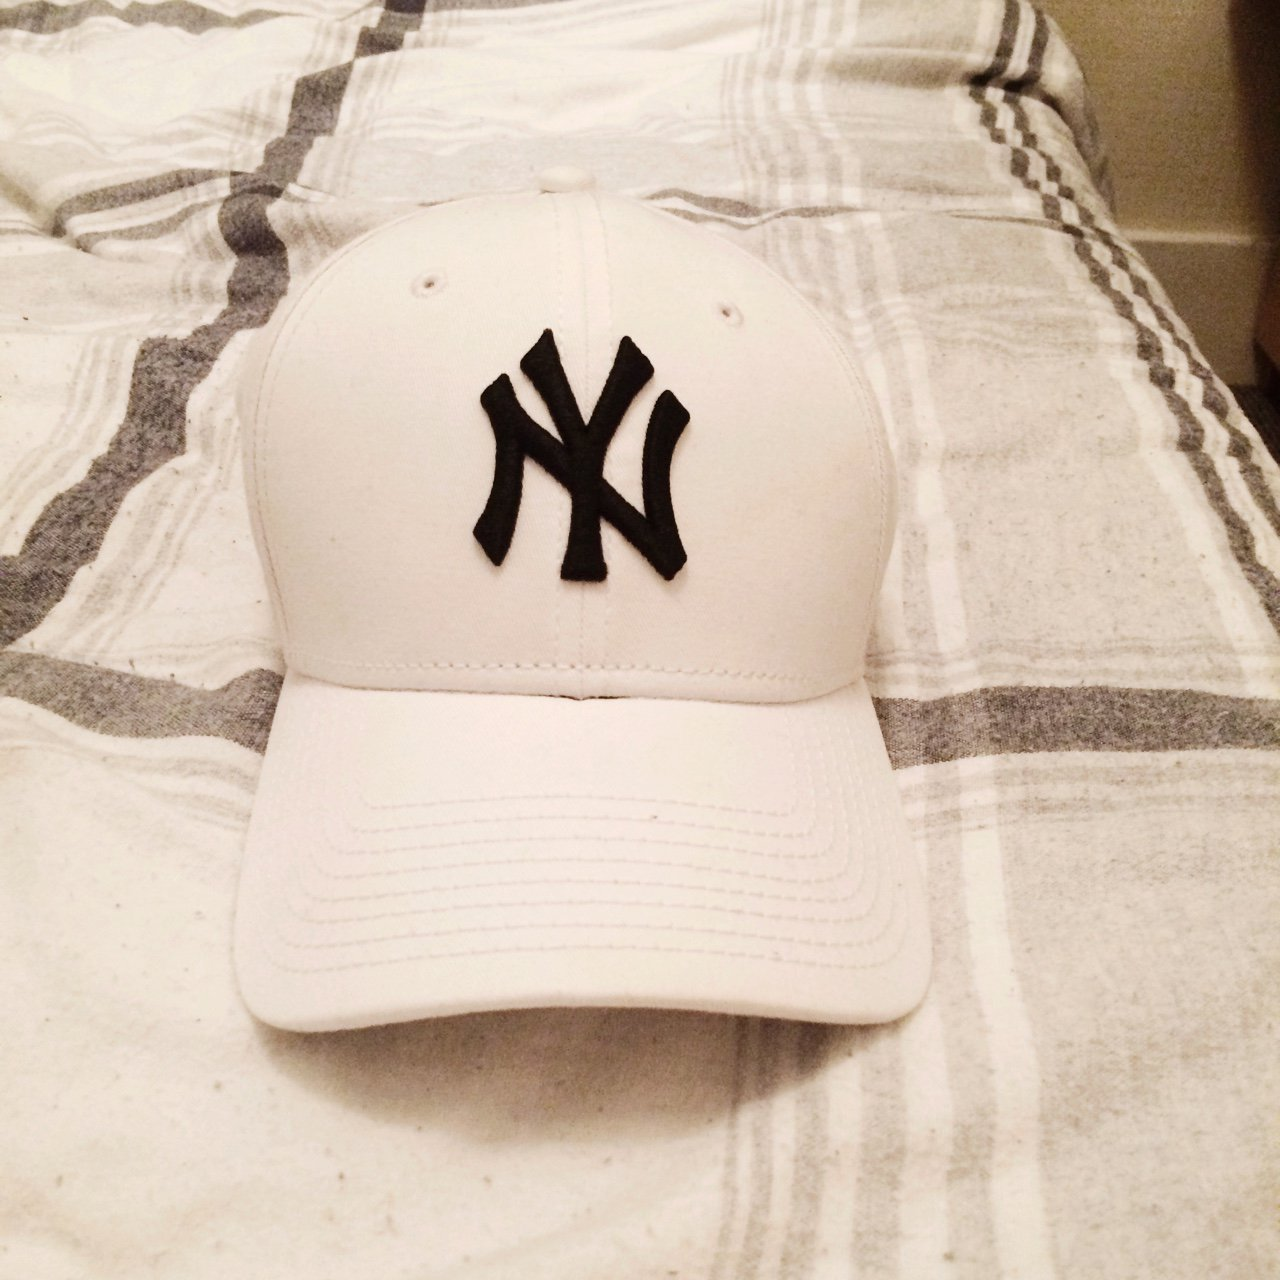 New Era New York Yankees 9FORTY adjustable cap  yankees - Depop 7ebdb8e3efe